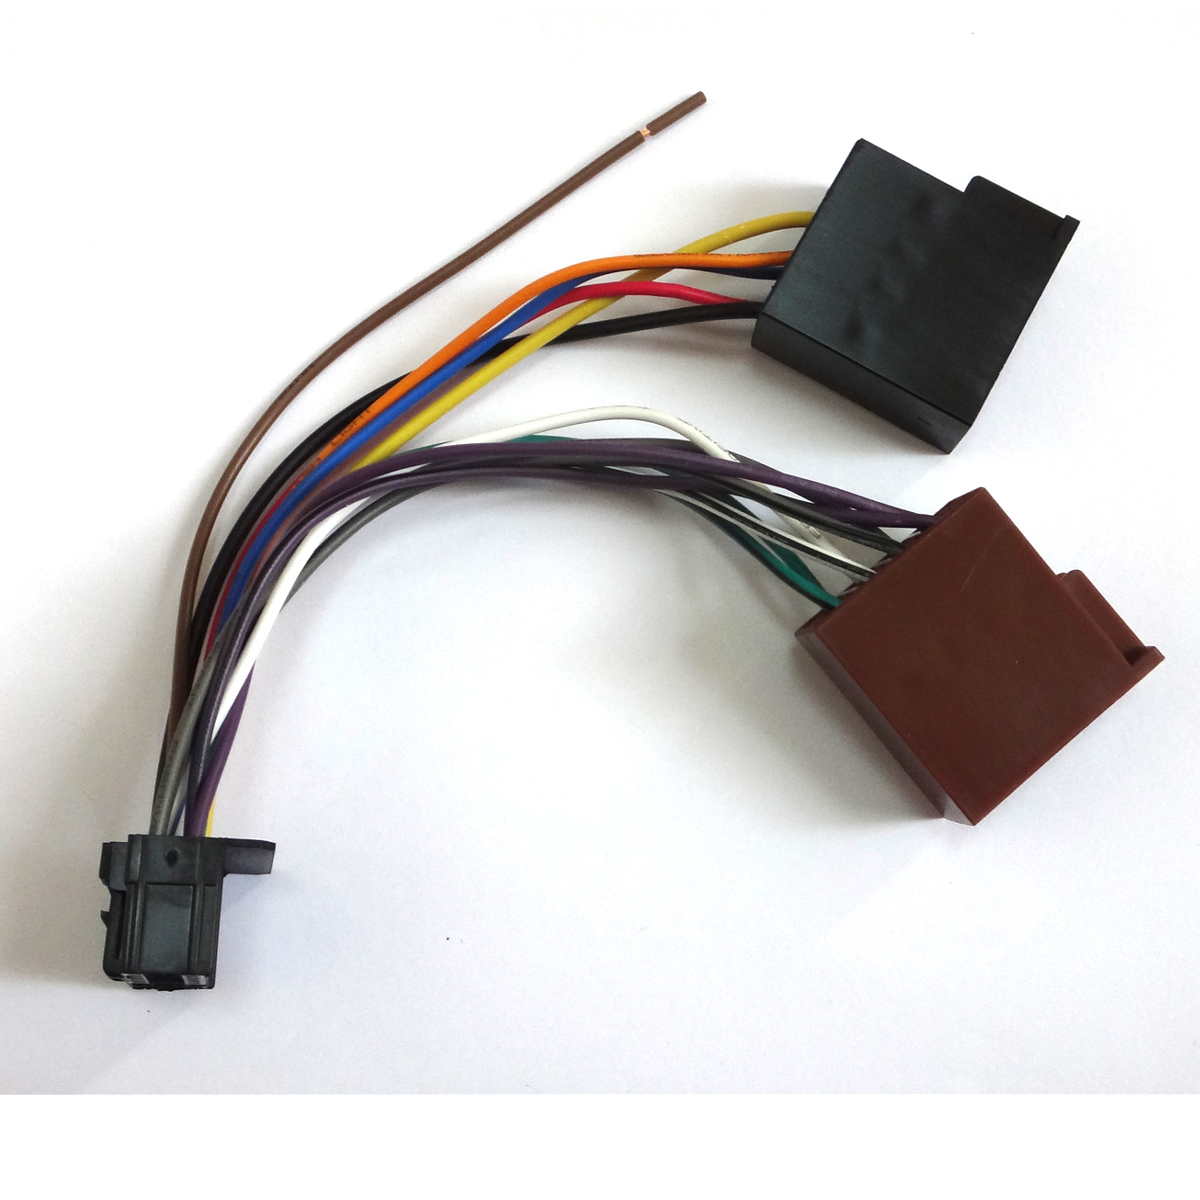 small resolution of pioneer wire harness car radio p5530mp p5800mp p5900mp p6500mp p6530mp p6700mp in vehicle gps from automobiles motorcycles on aliexpress com alibaba